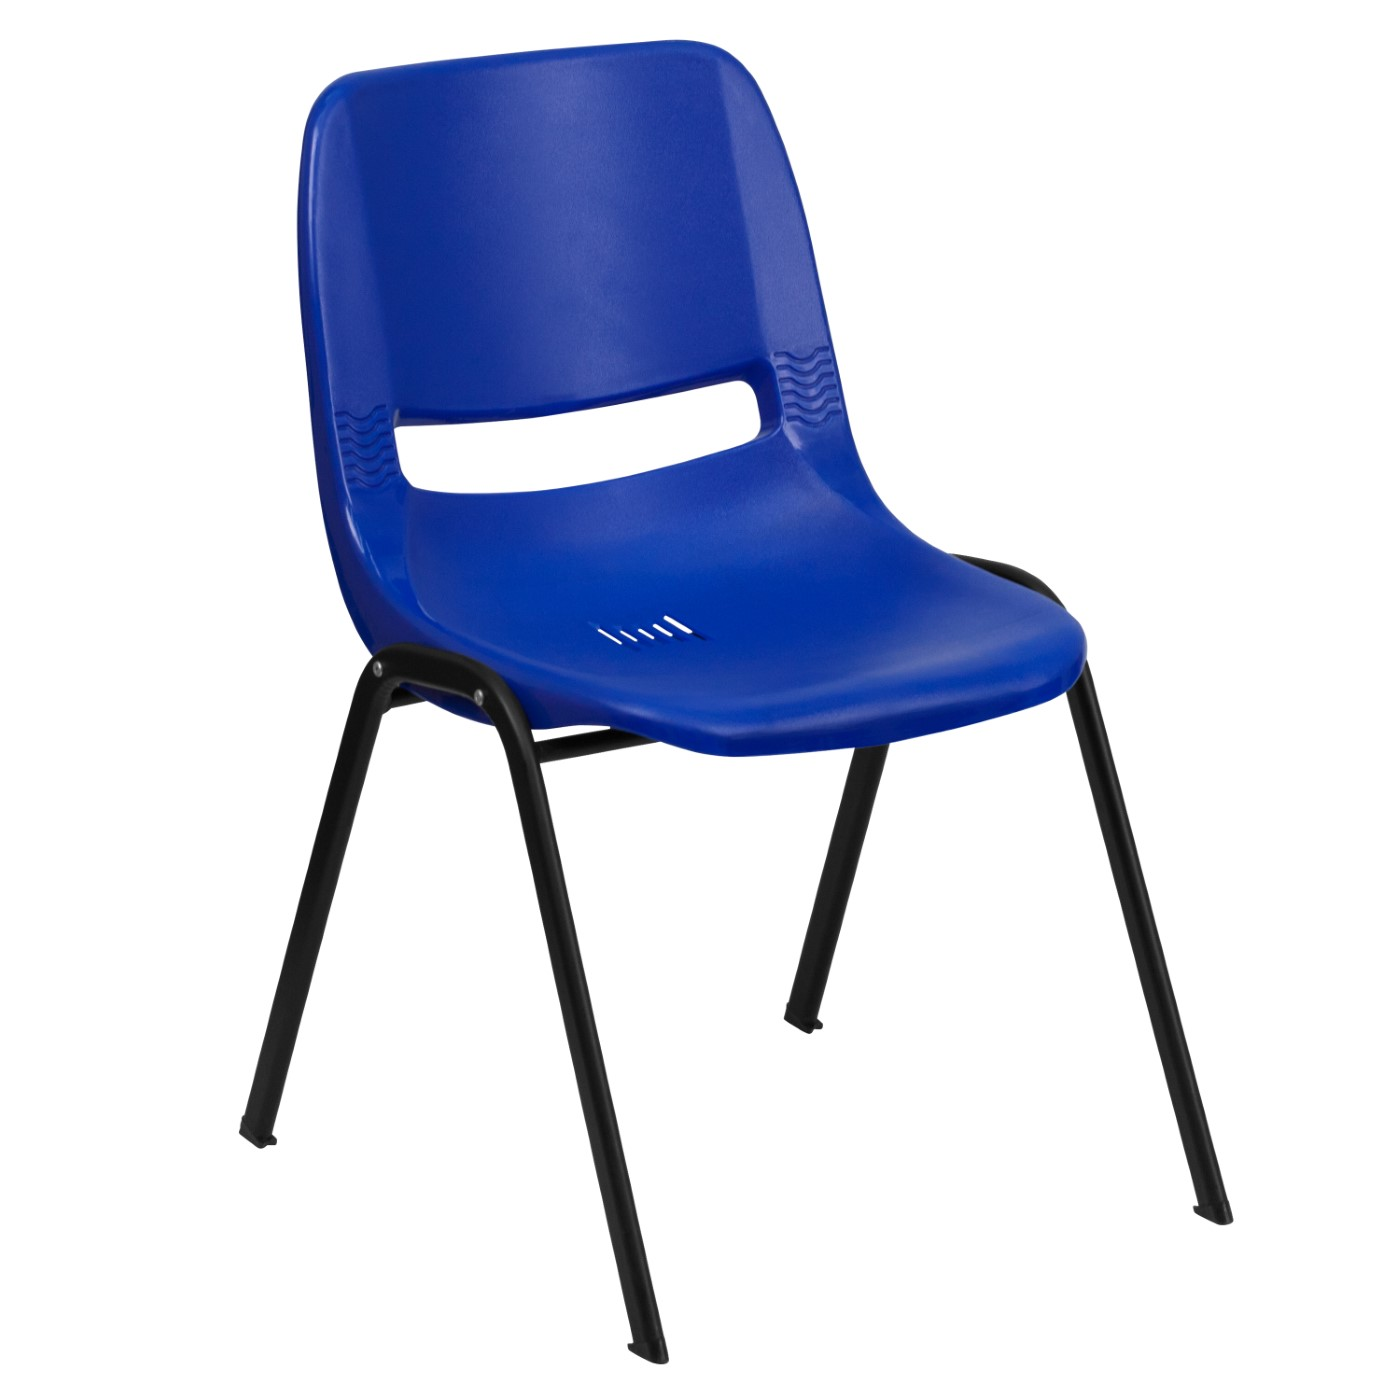 TOUGH ENOUGH Series 880 lb. Capacity Blue Ergonomic Shell Stack Chair with Black Frame